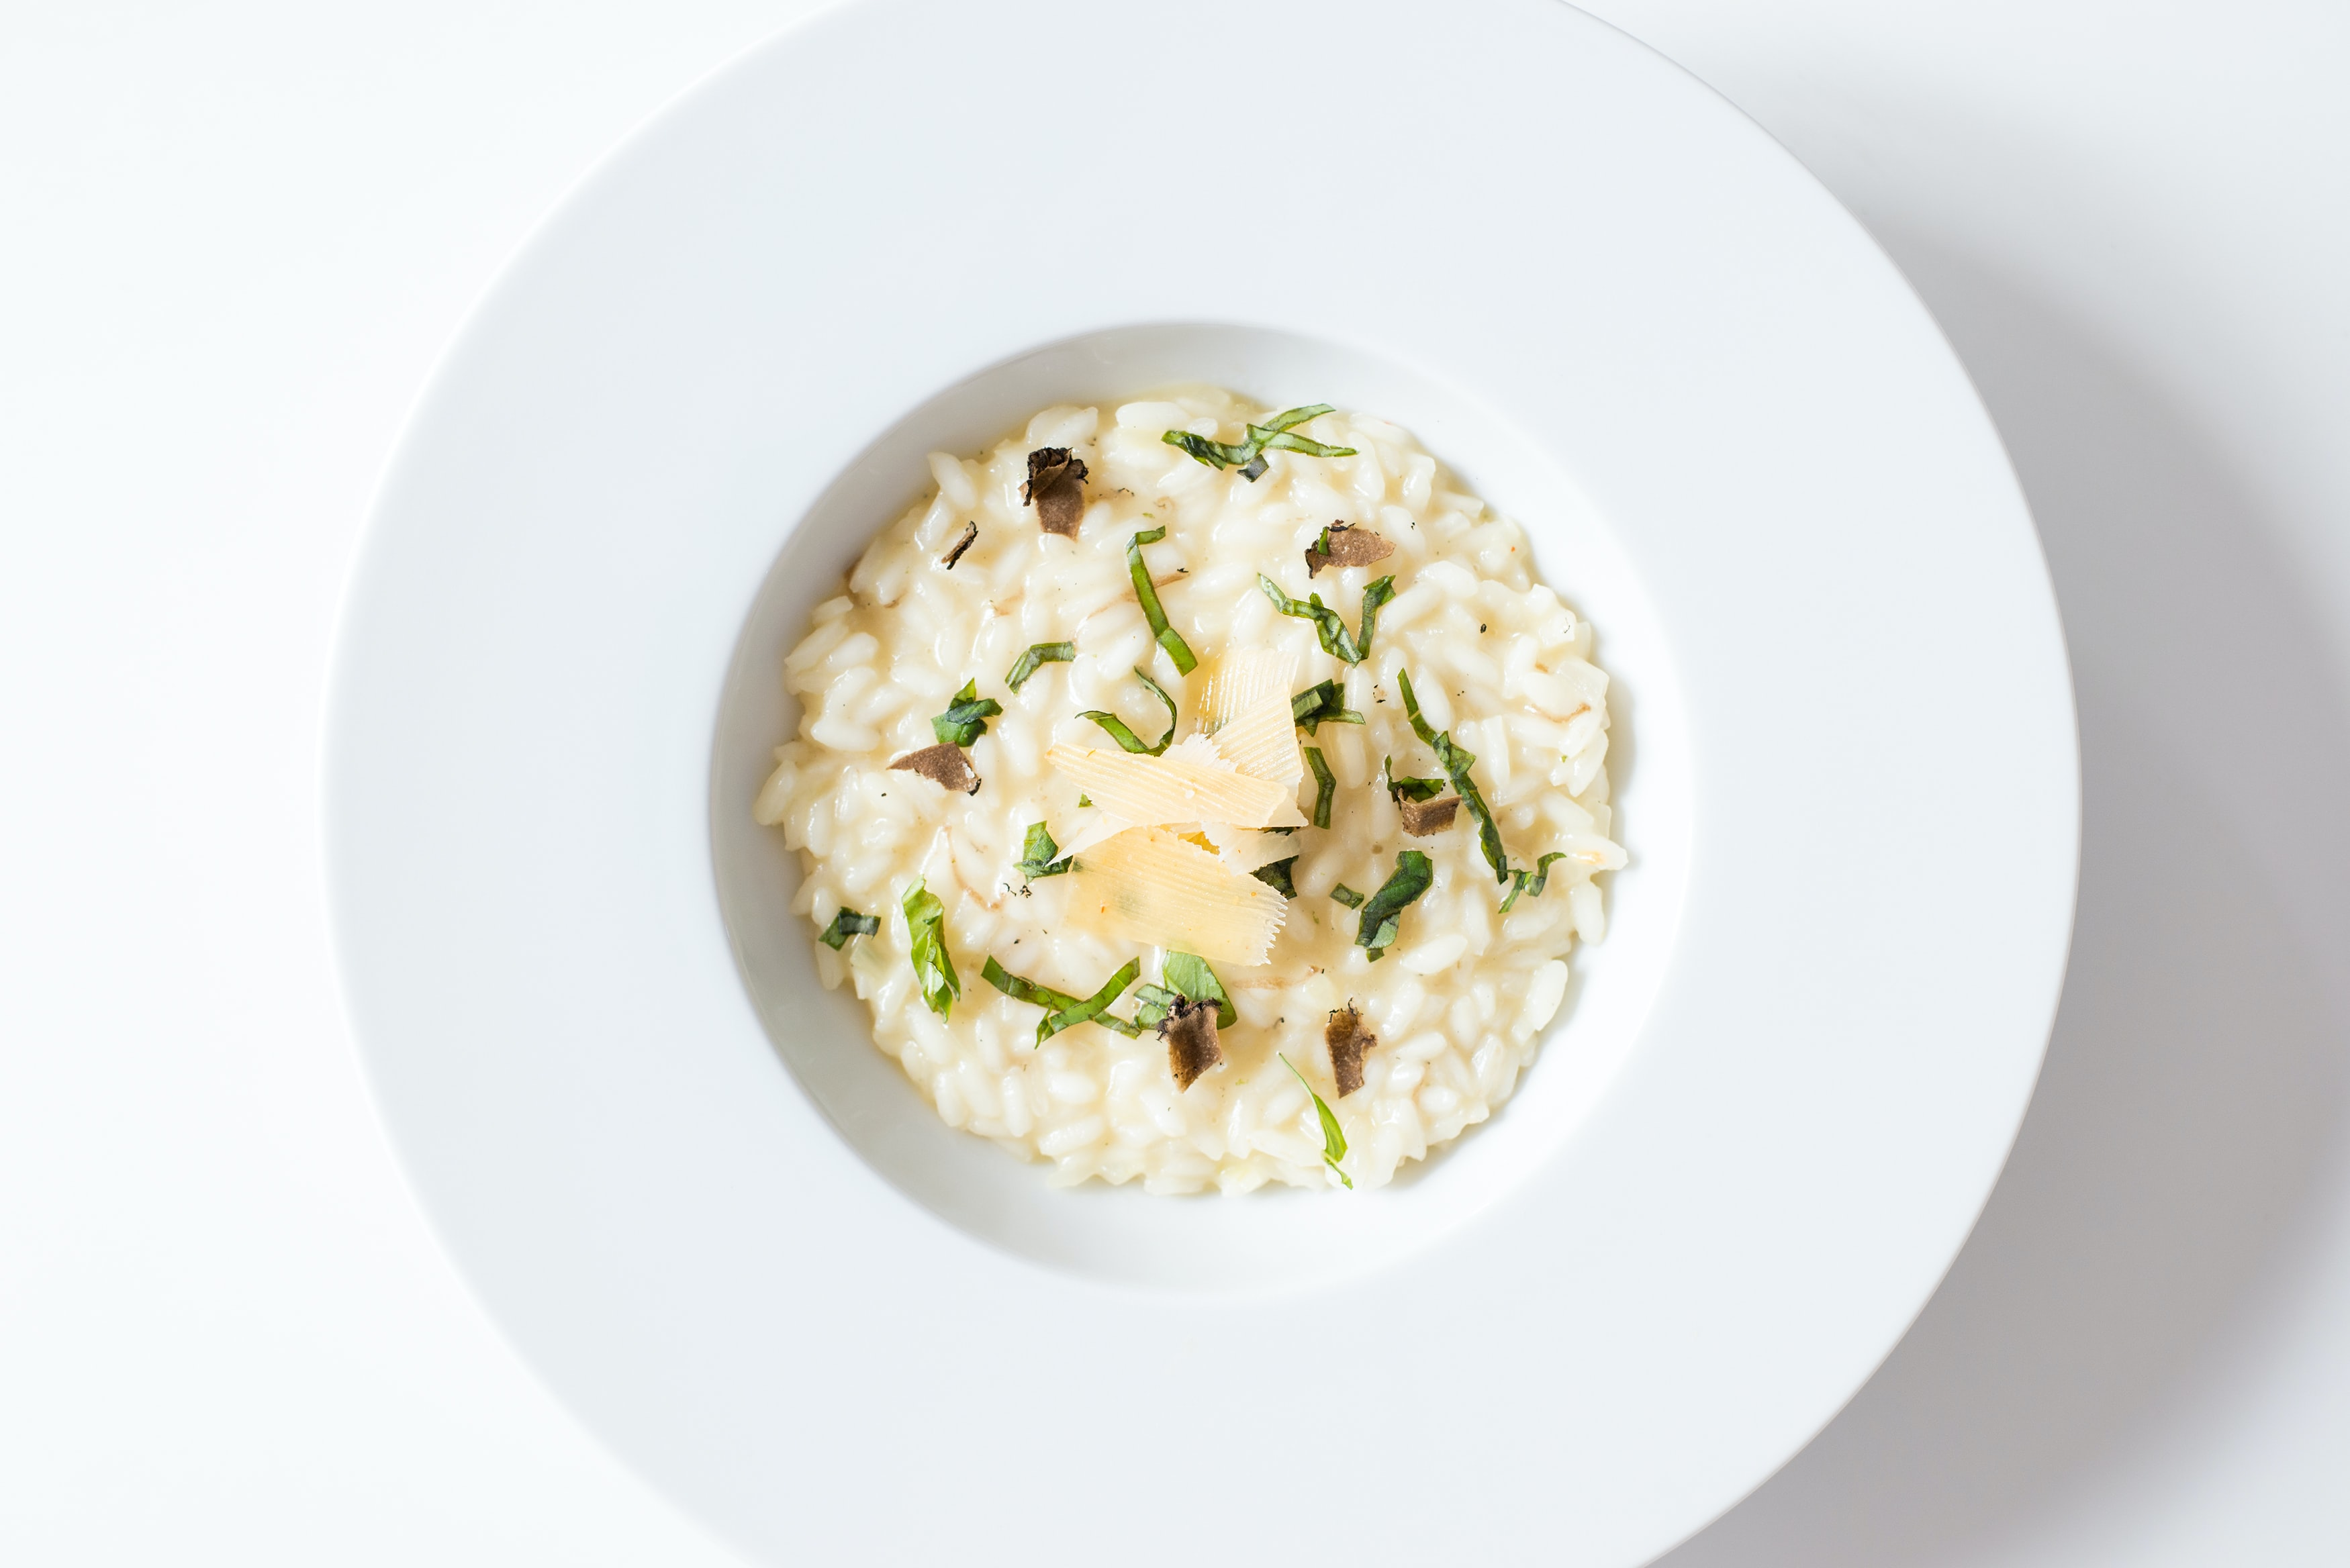 Bowl of risotto with rice, cheese, and herbs for dinner